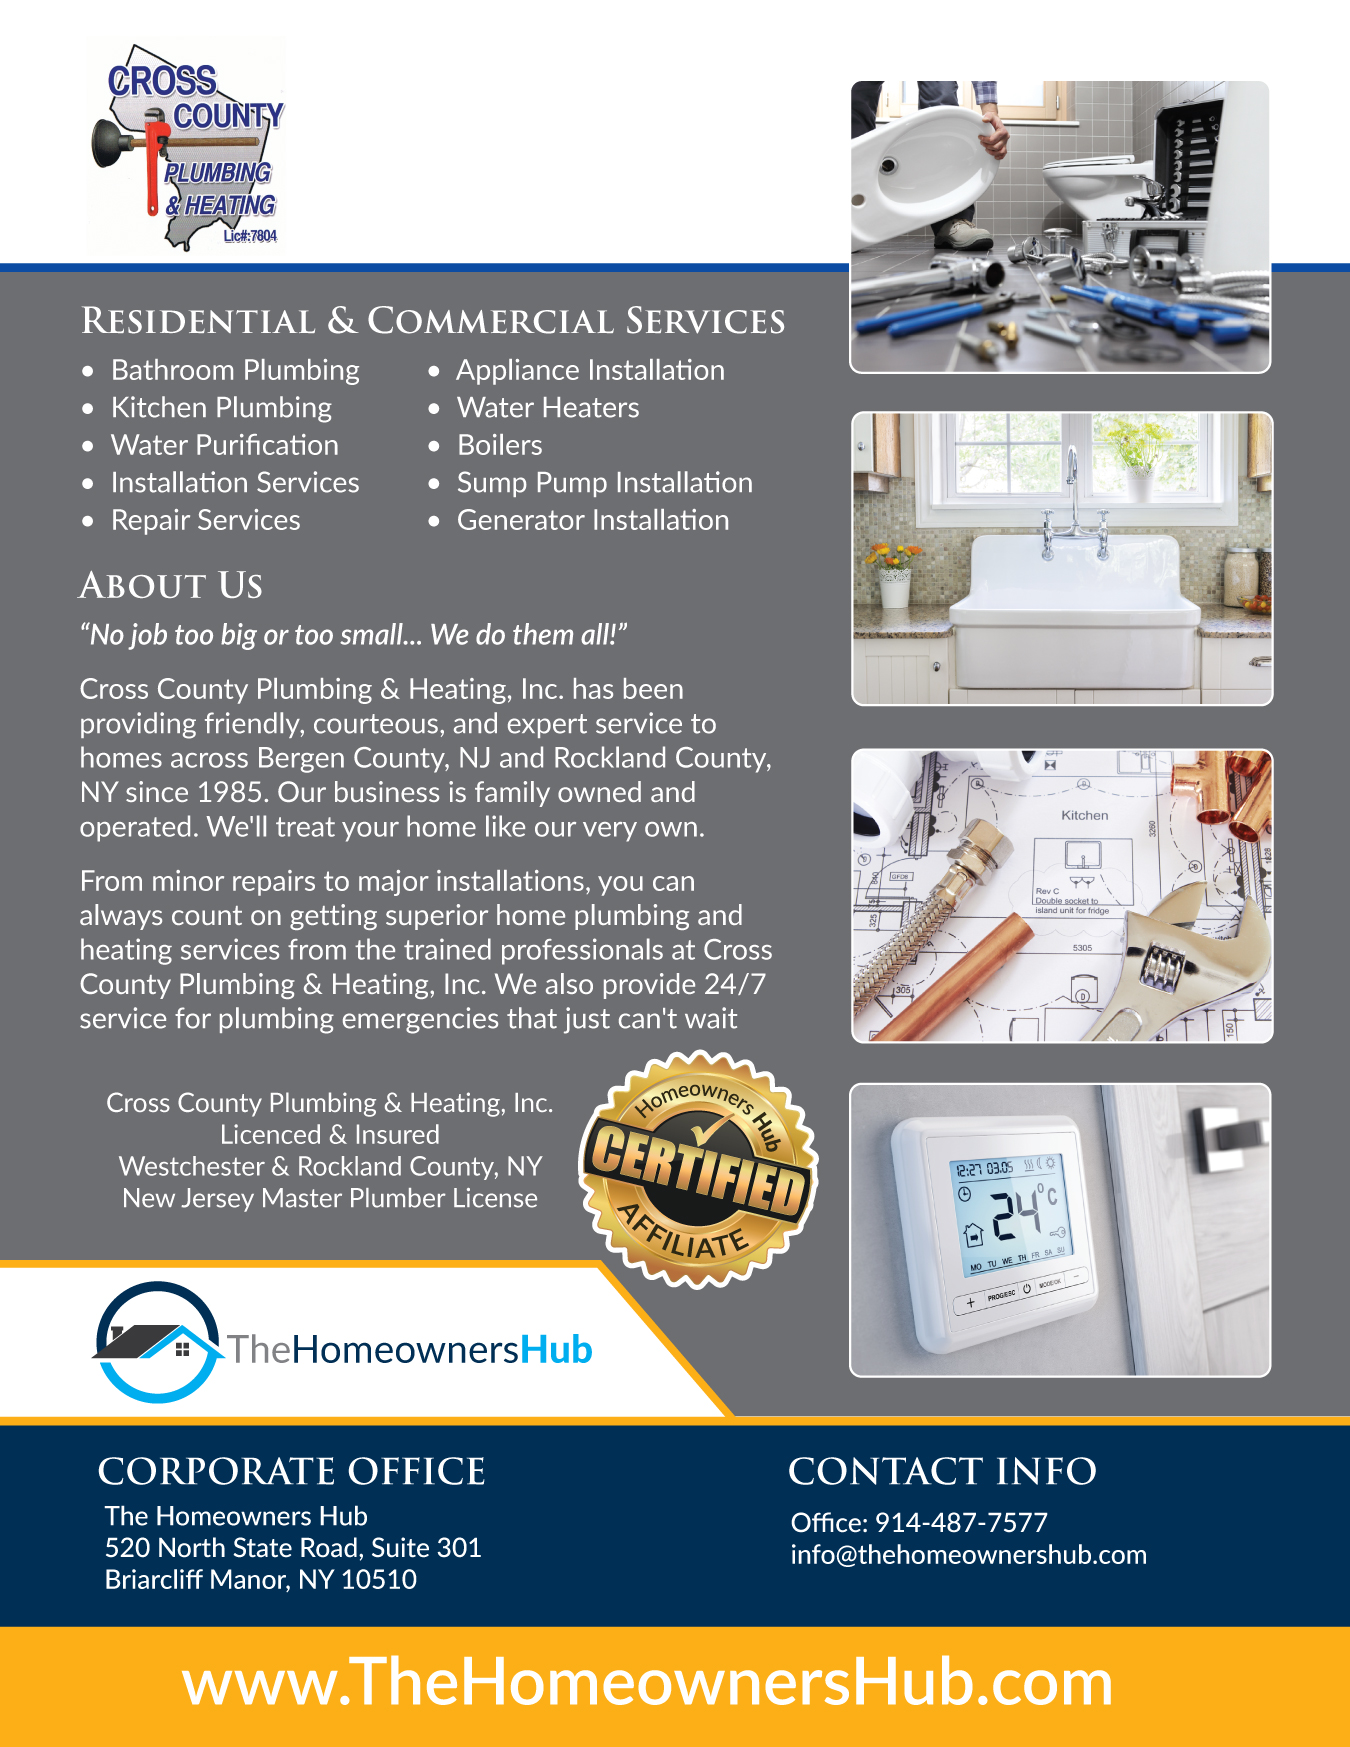 Cross County Pluming & Heating Services